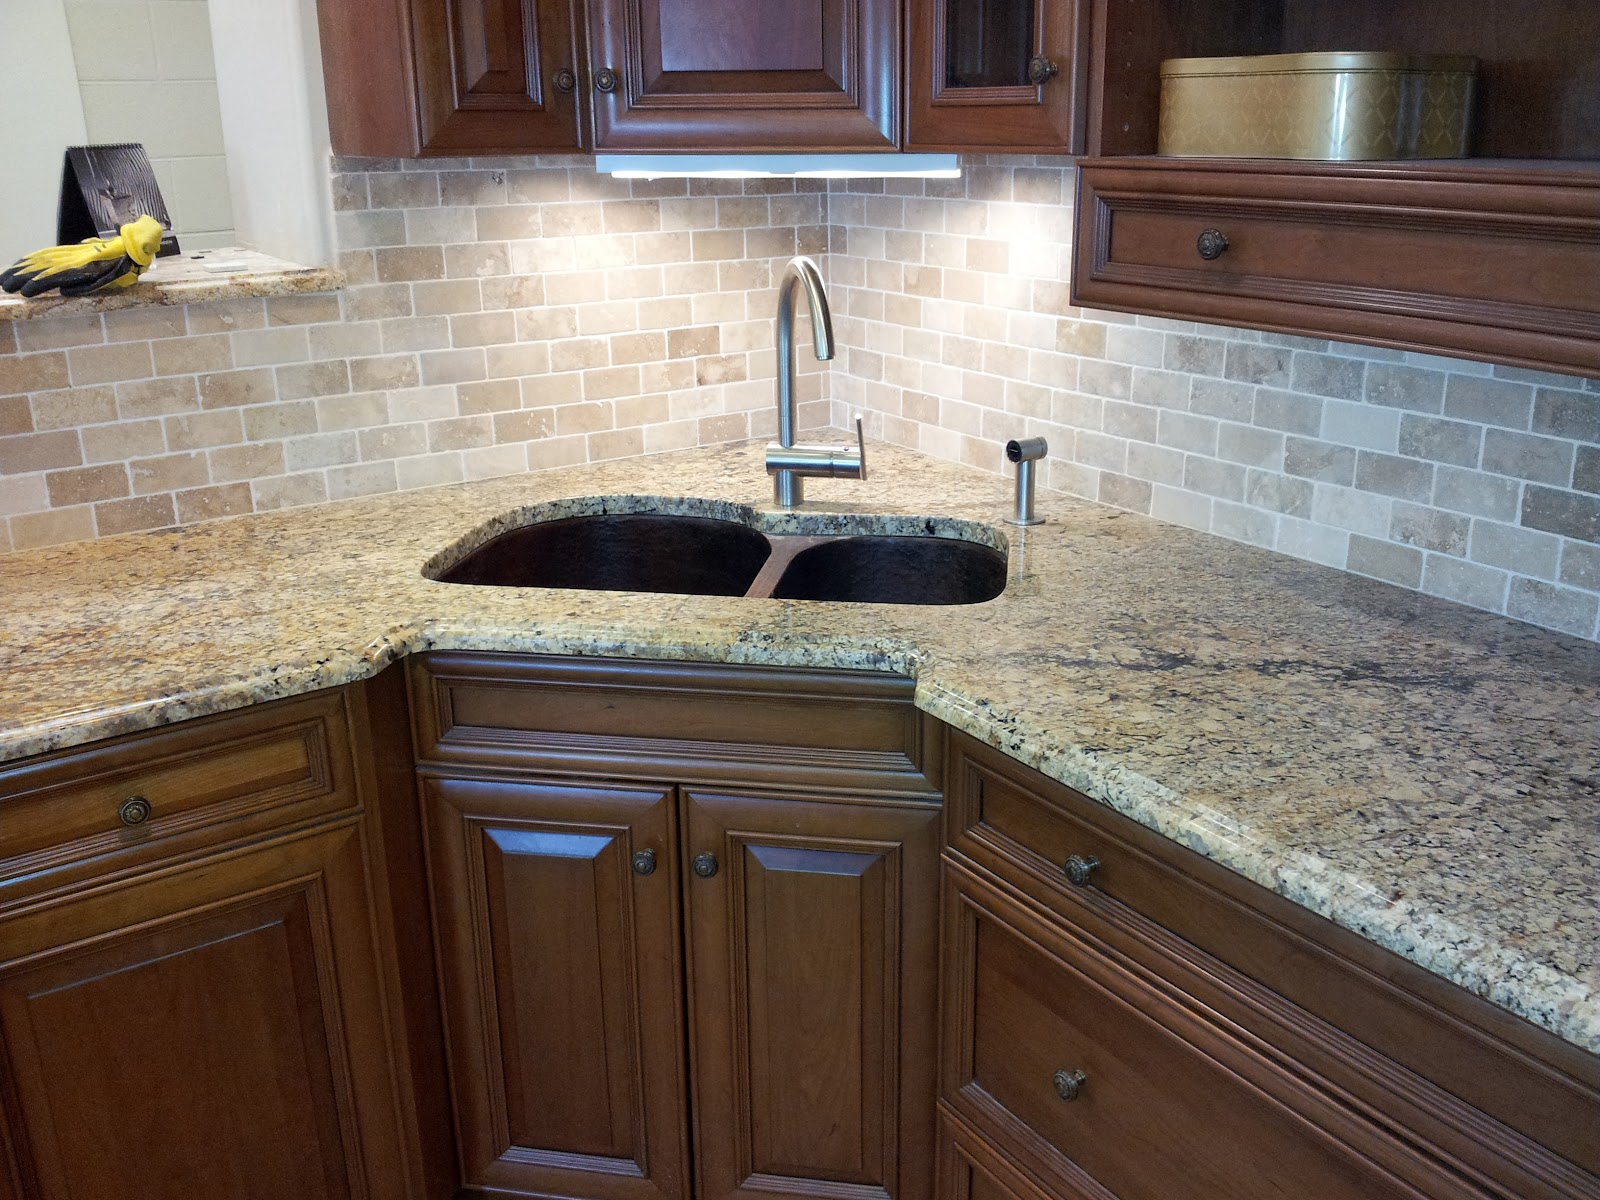 Groutless Backsplash, How to Minimize The Grouts? - HomesFeed on Best Backsplash For Granite Countertops  id=94488